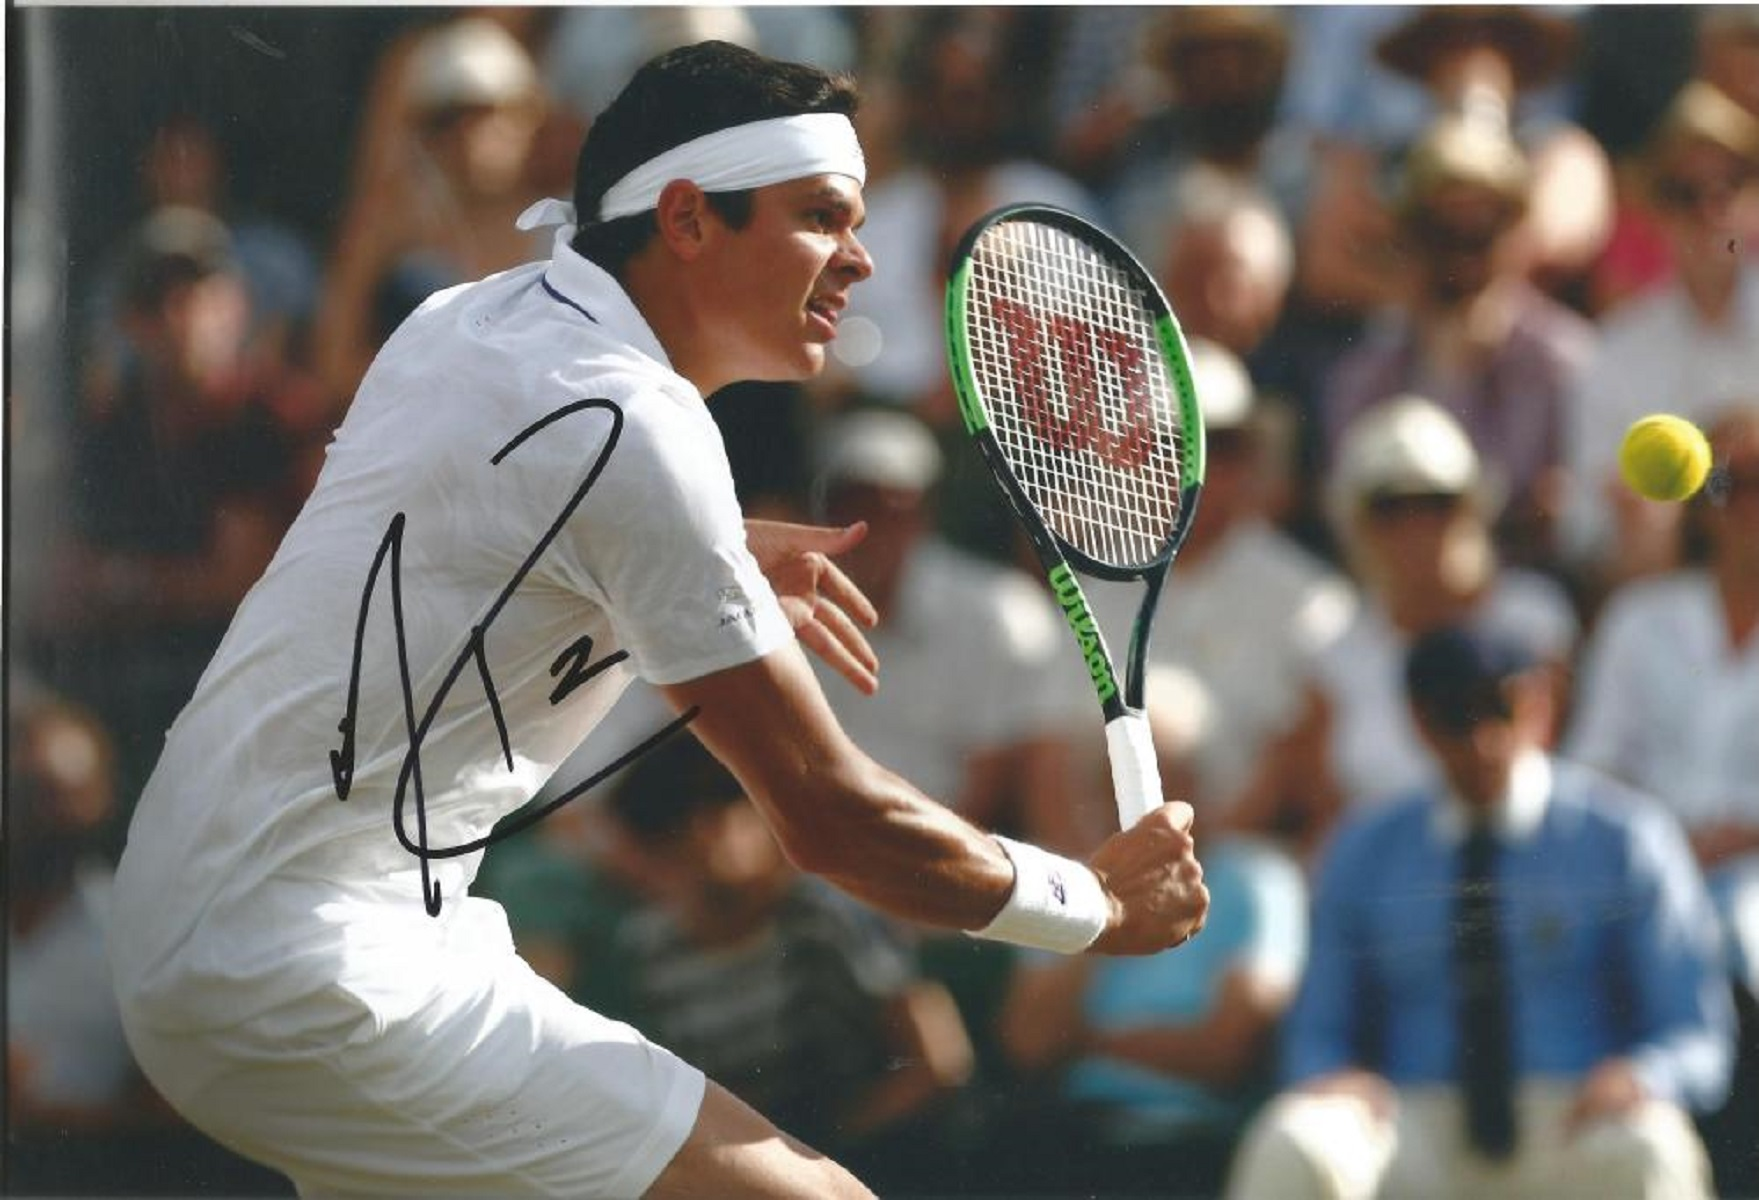 Tennis Milos Raonic signed 12x8 colour photo. Canadian professional tennis player. He reached a